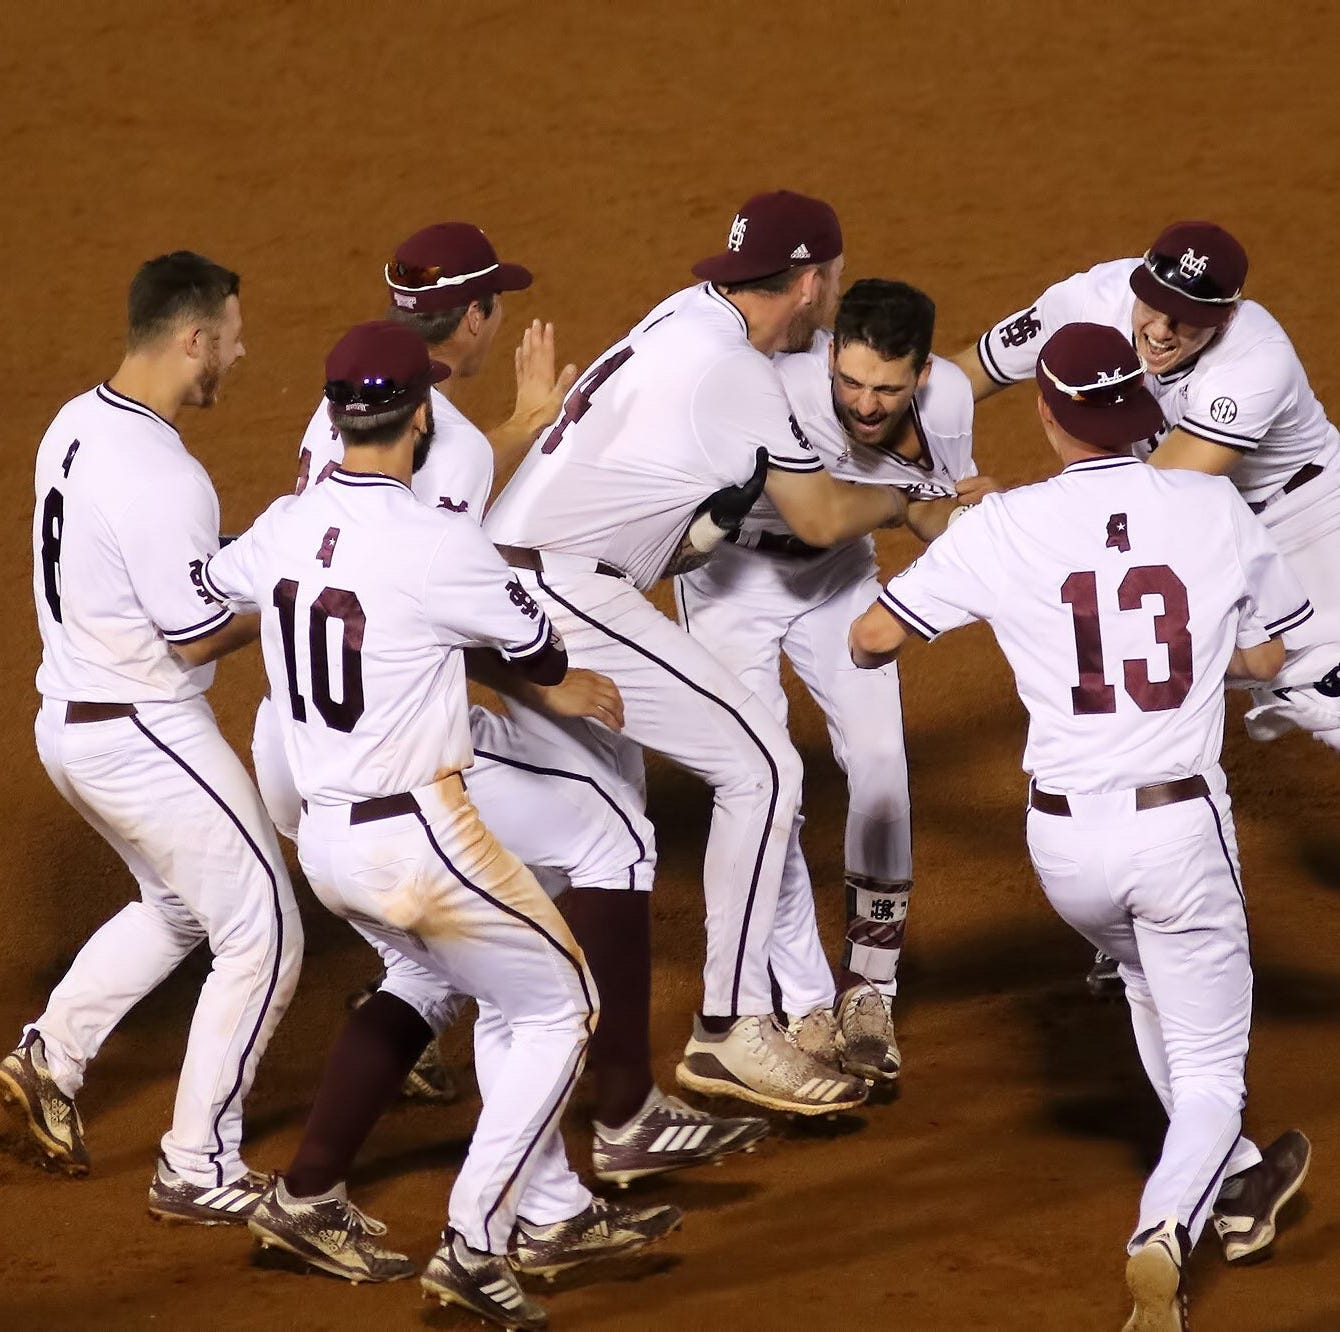 Mississippi State walks off LSU in record-setting game in SEC Tournament